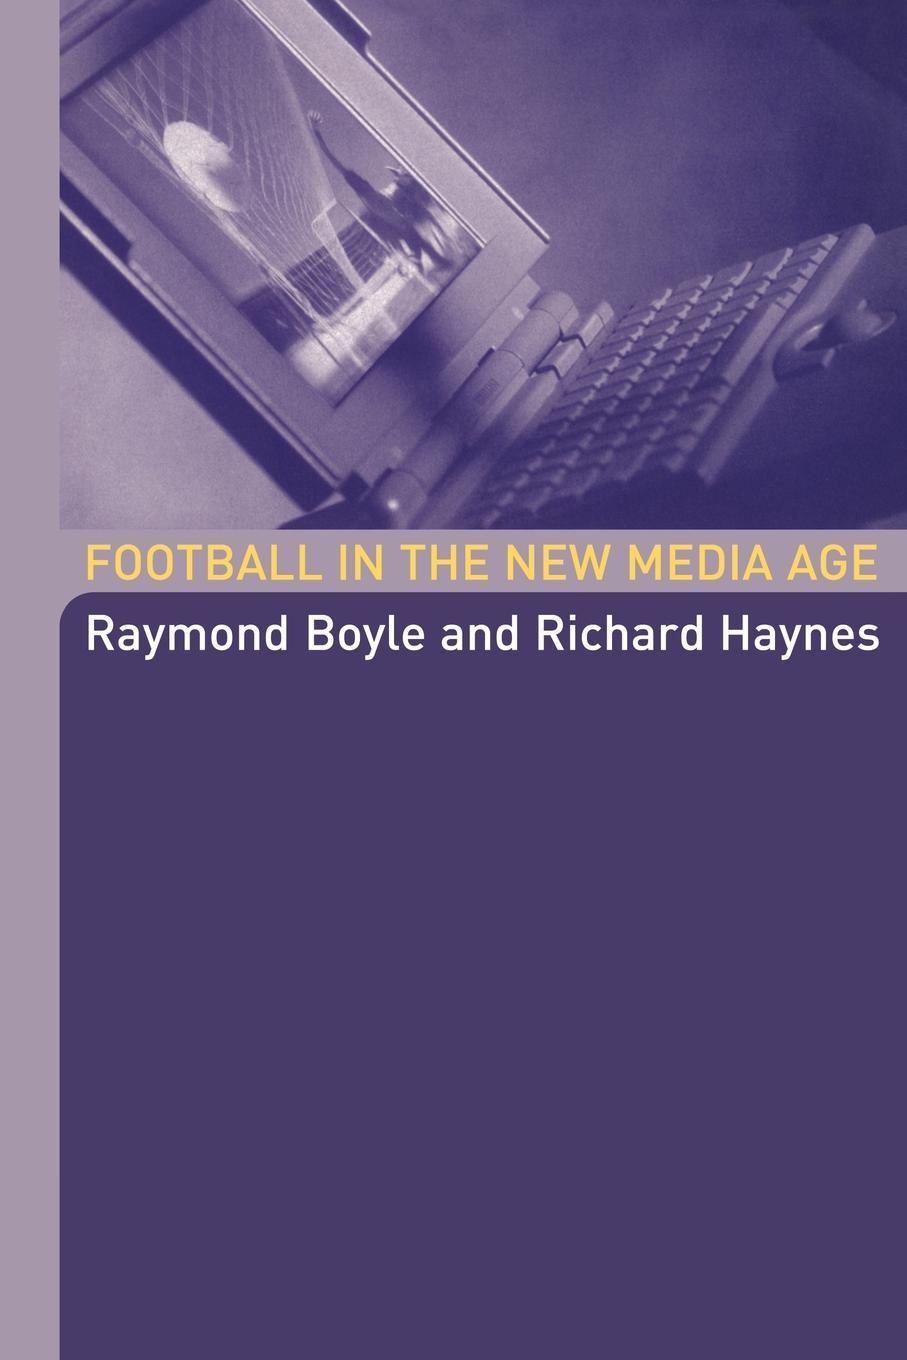 Football in the New Media Age EB9780203600467